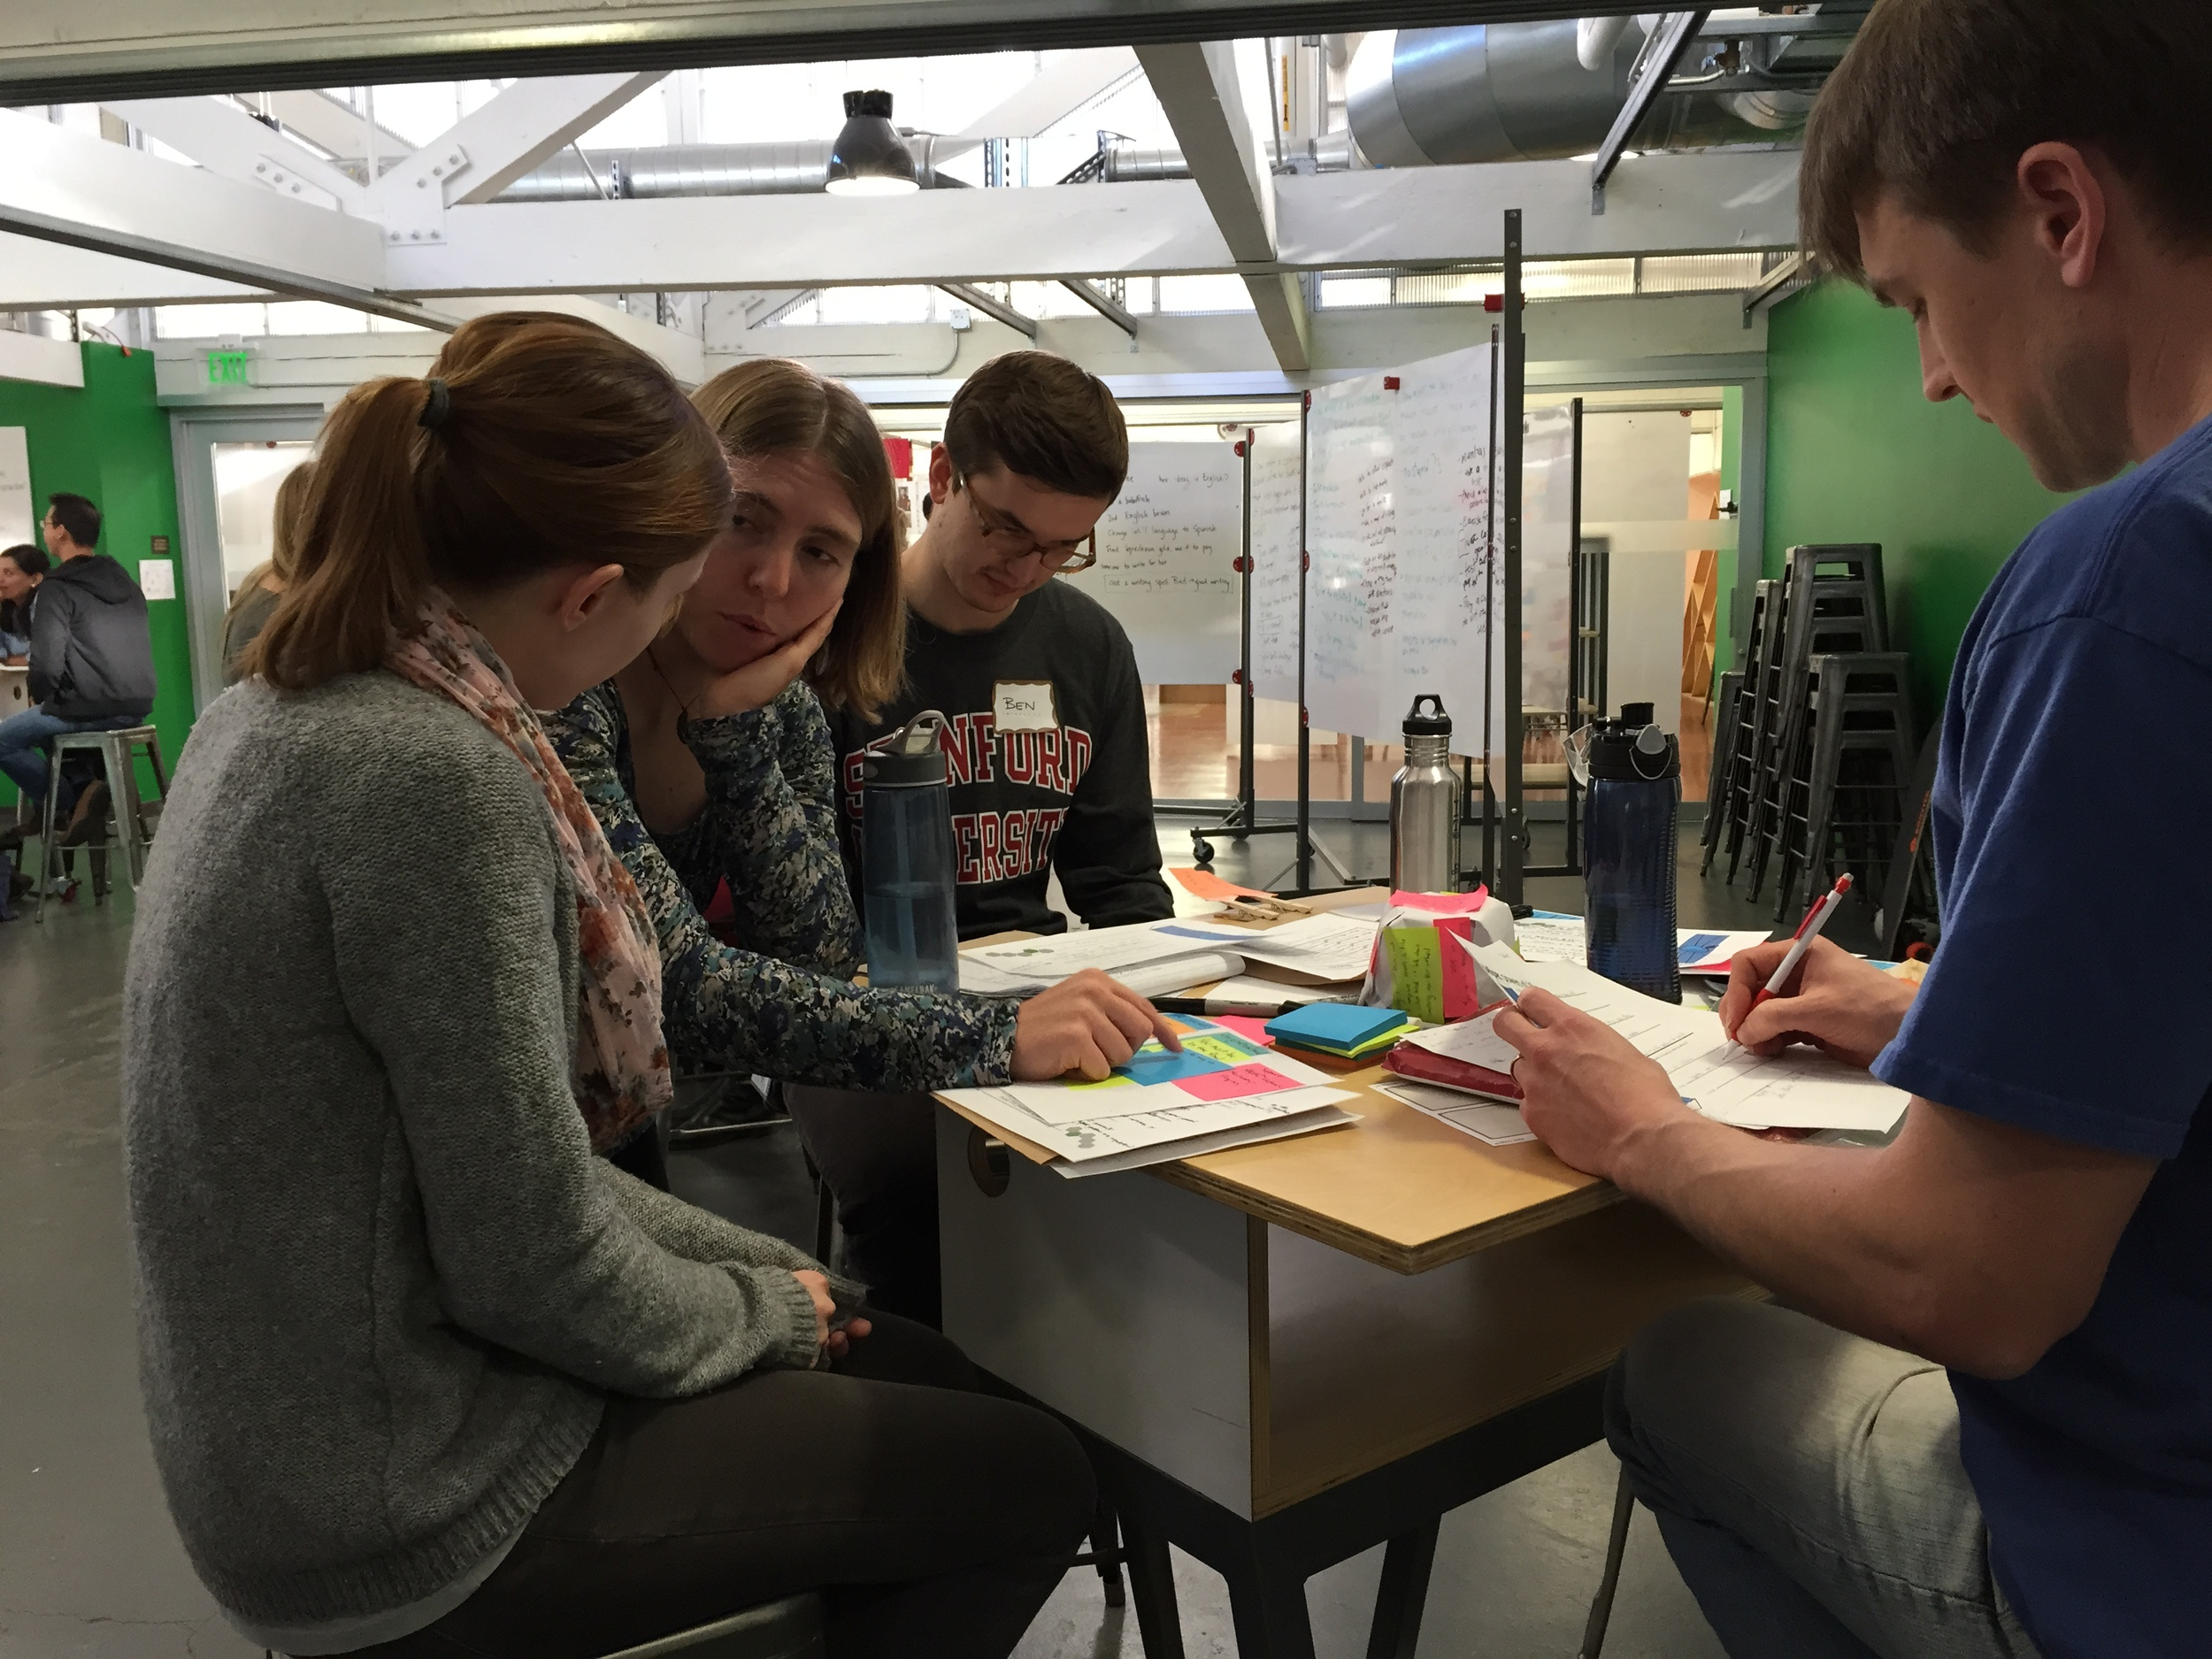 Amanda (middle ground) sits with students as they learn to apply design thinking to their work. (Emi Kolawole)